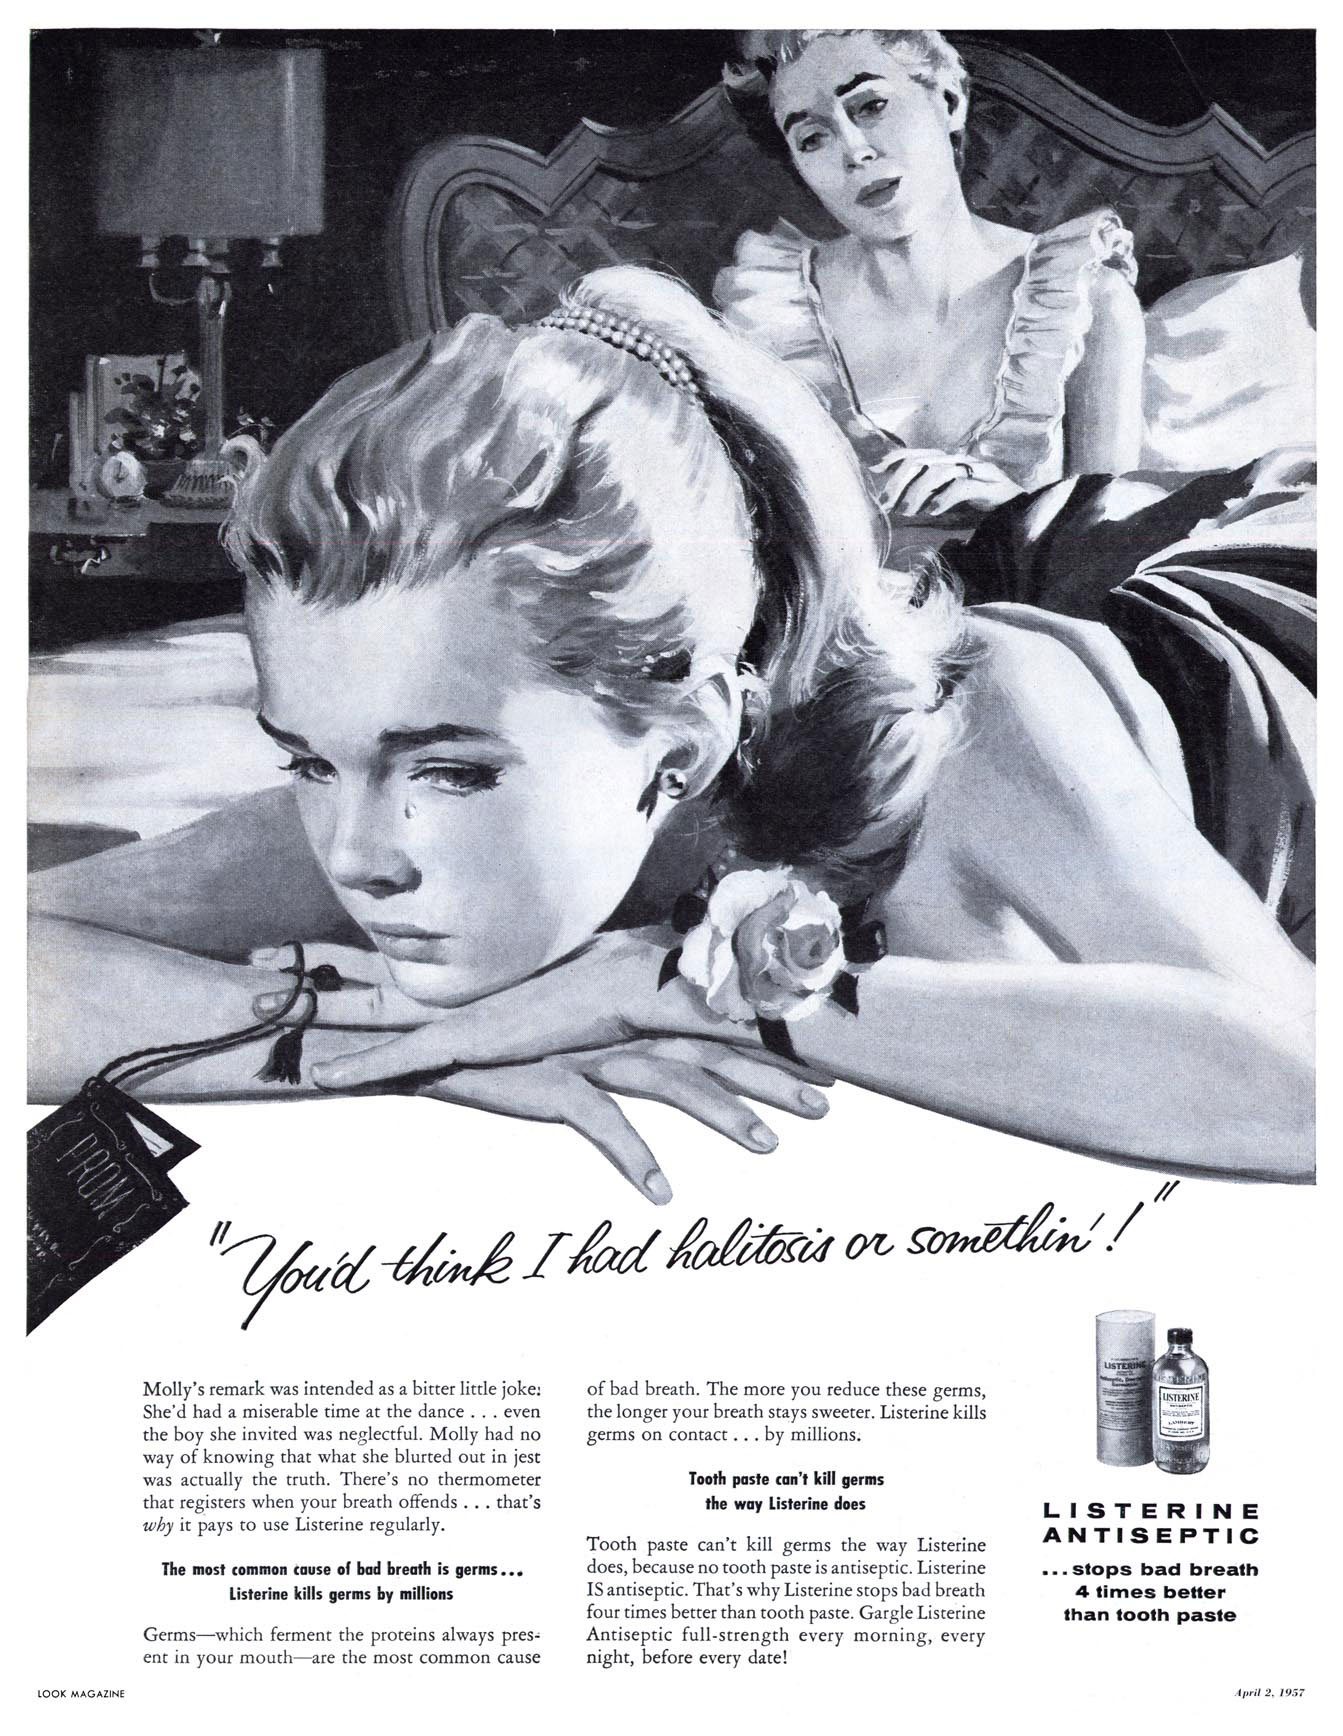 Listerine - published in Look - April 2, 1957